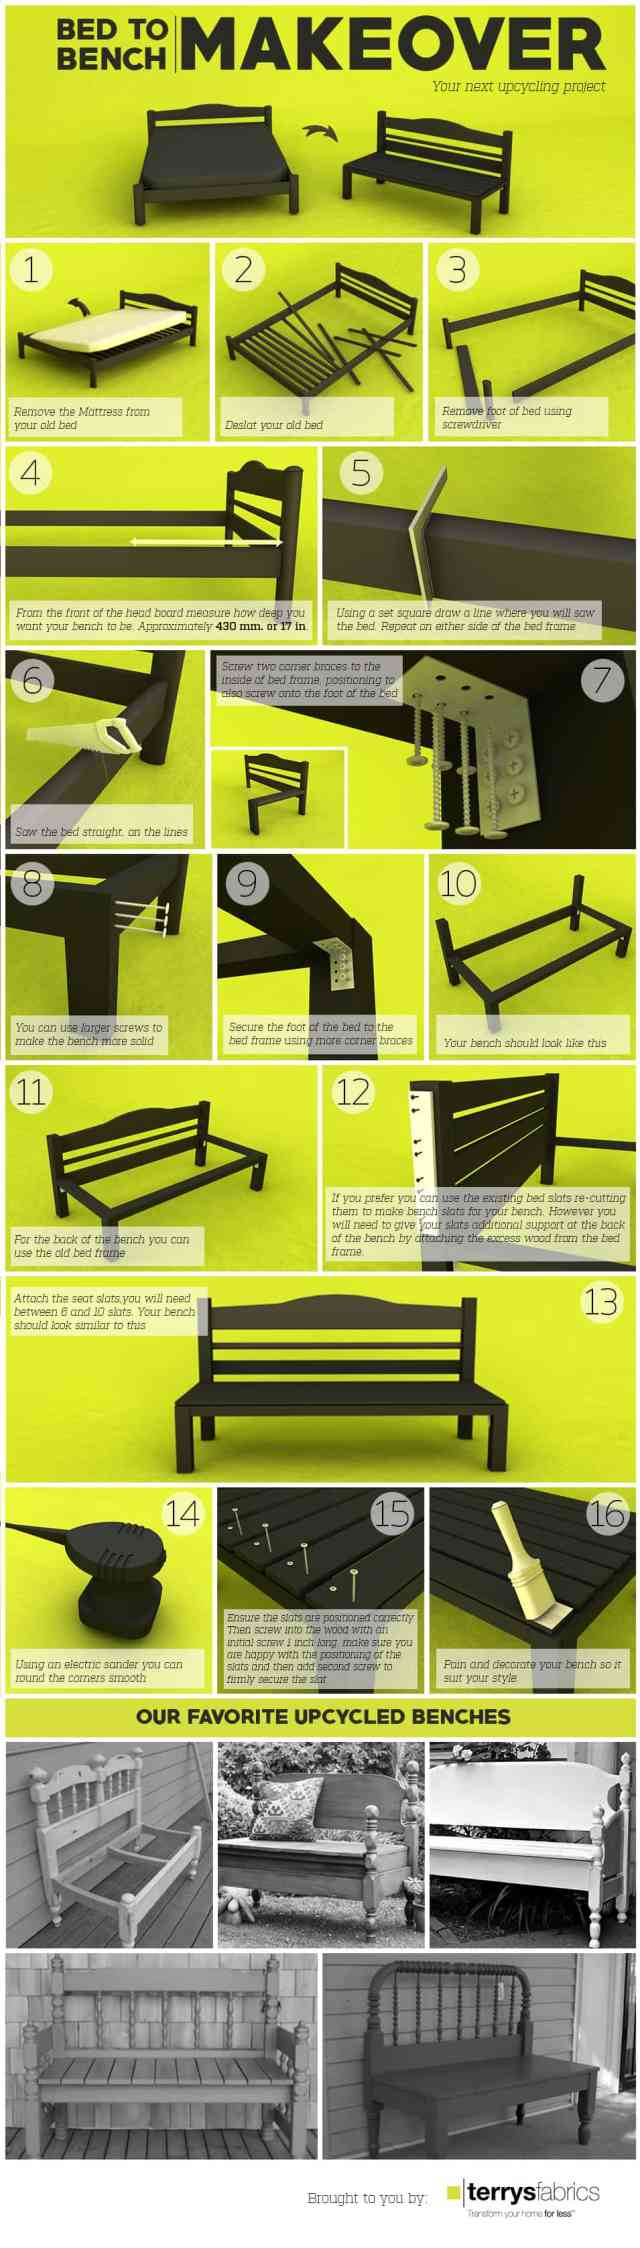 Upcycling project - Make a bench from a bed